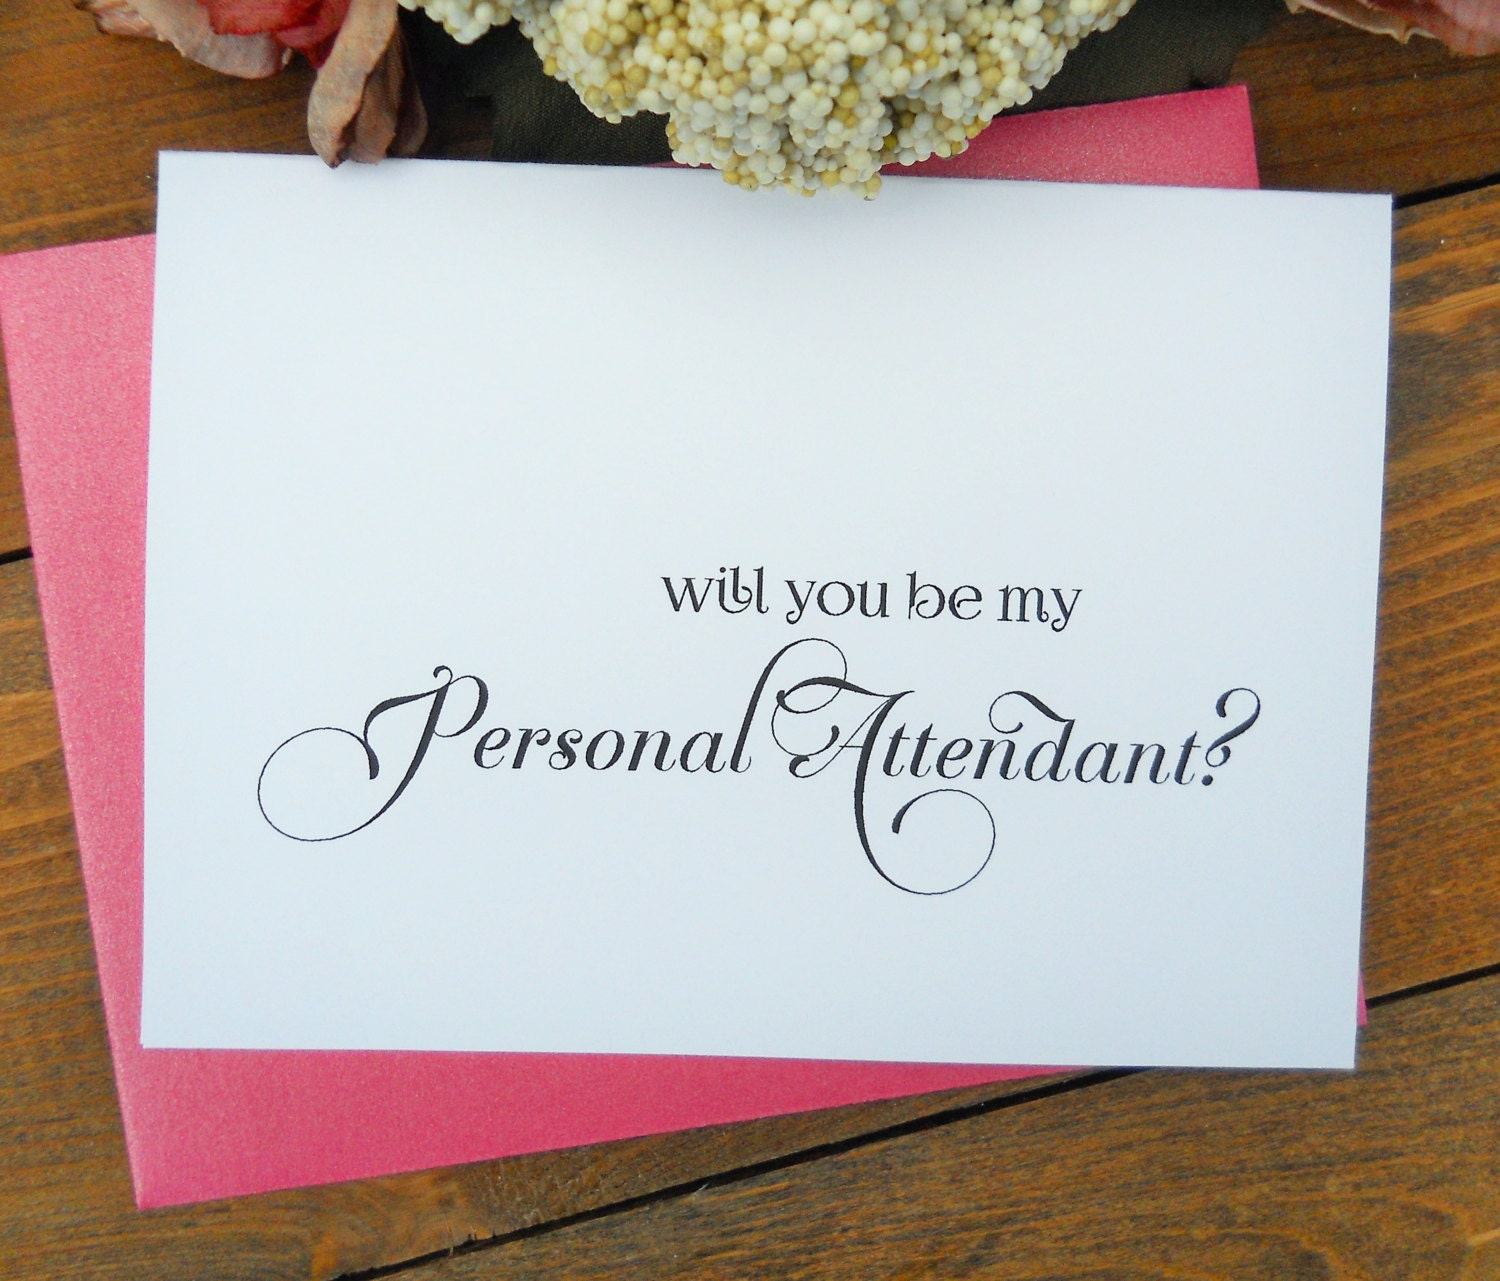 Thank You Gifts Wedding Attendants : Ideas Wedding Attendants Gift Ideas attendant gifts etsy will you be ...